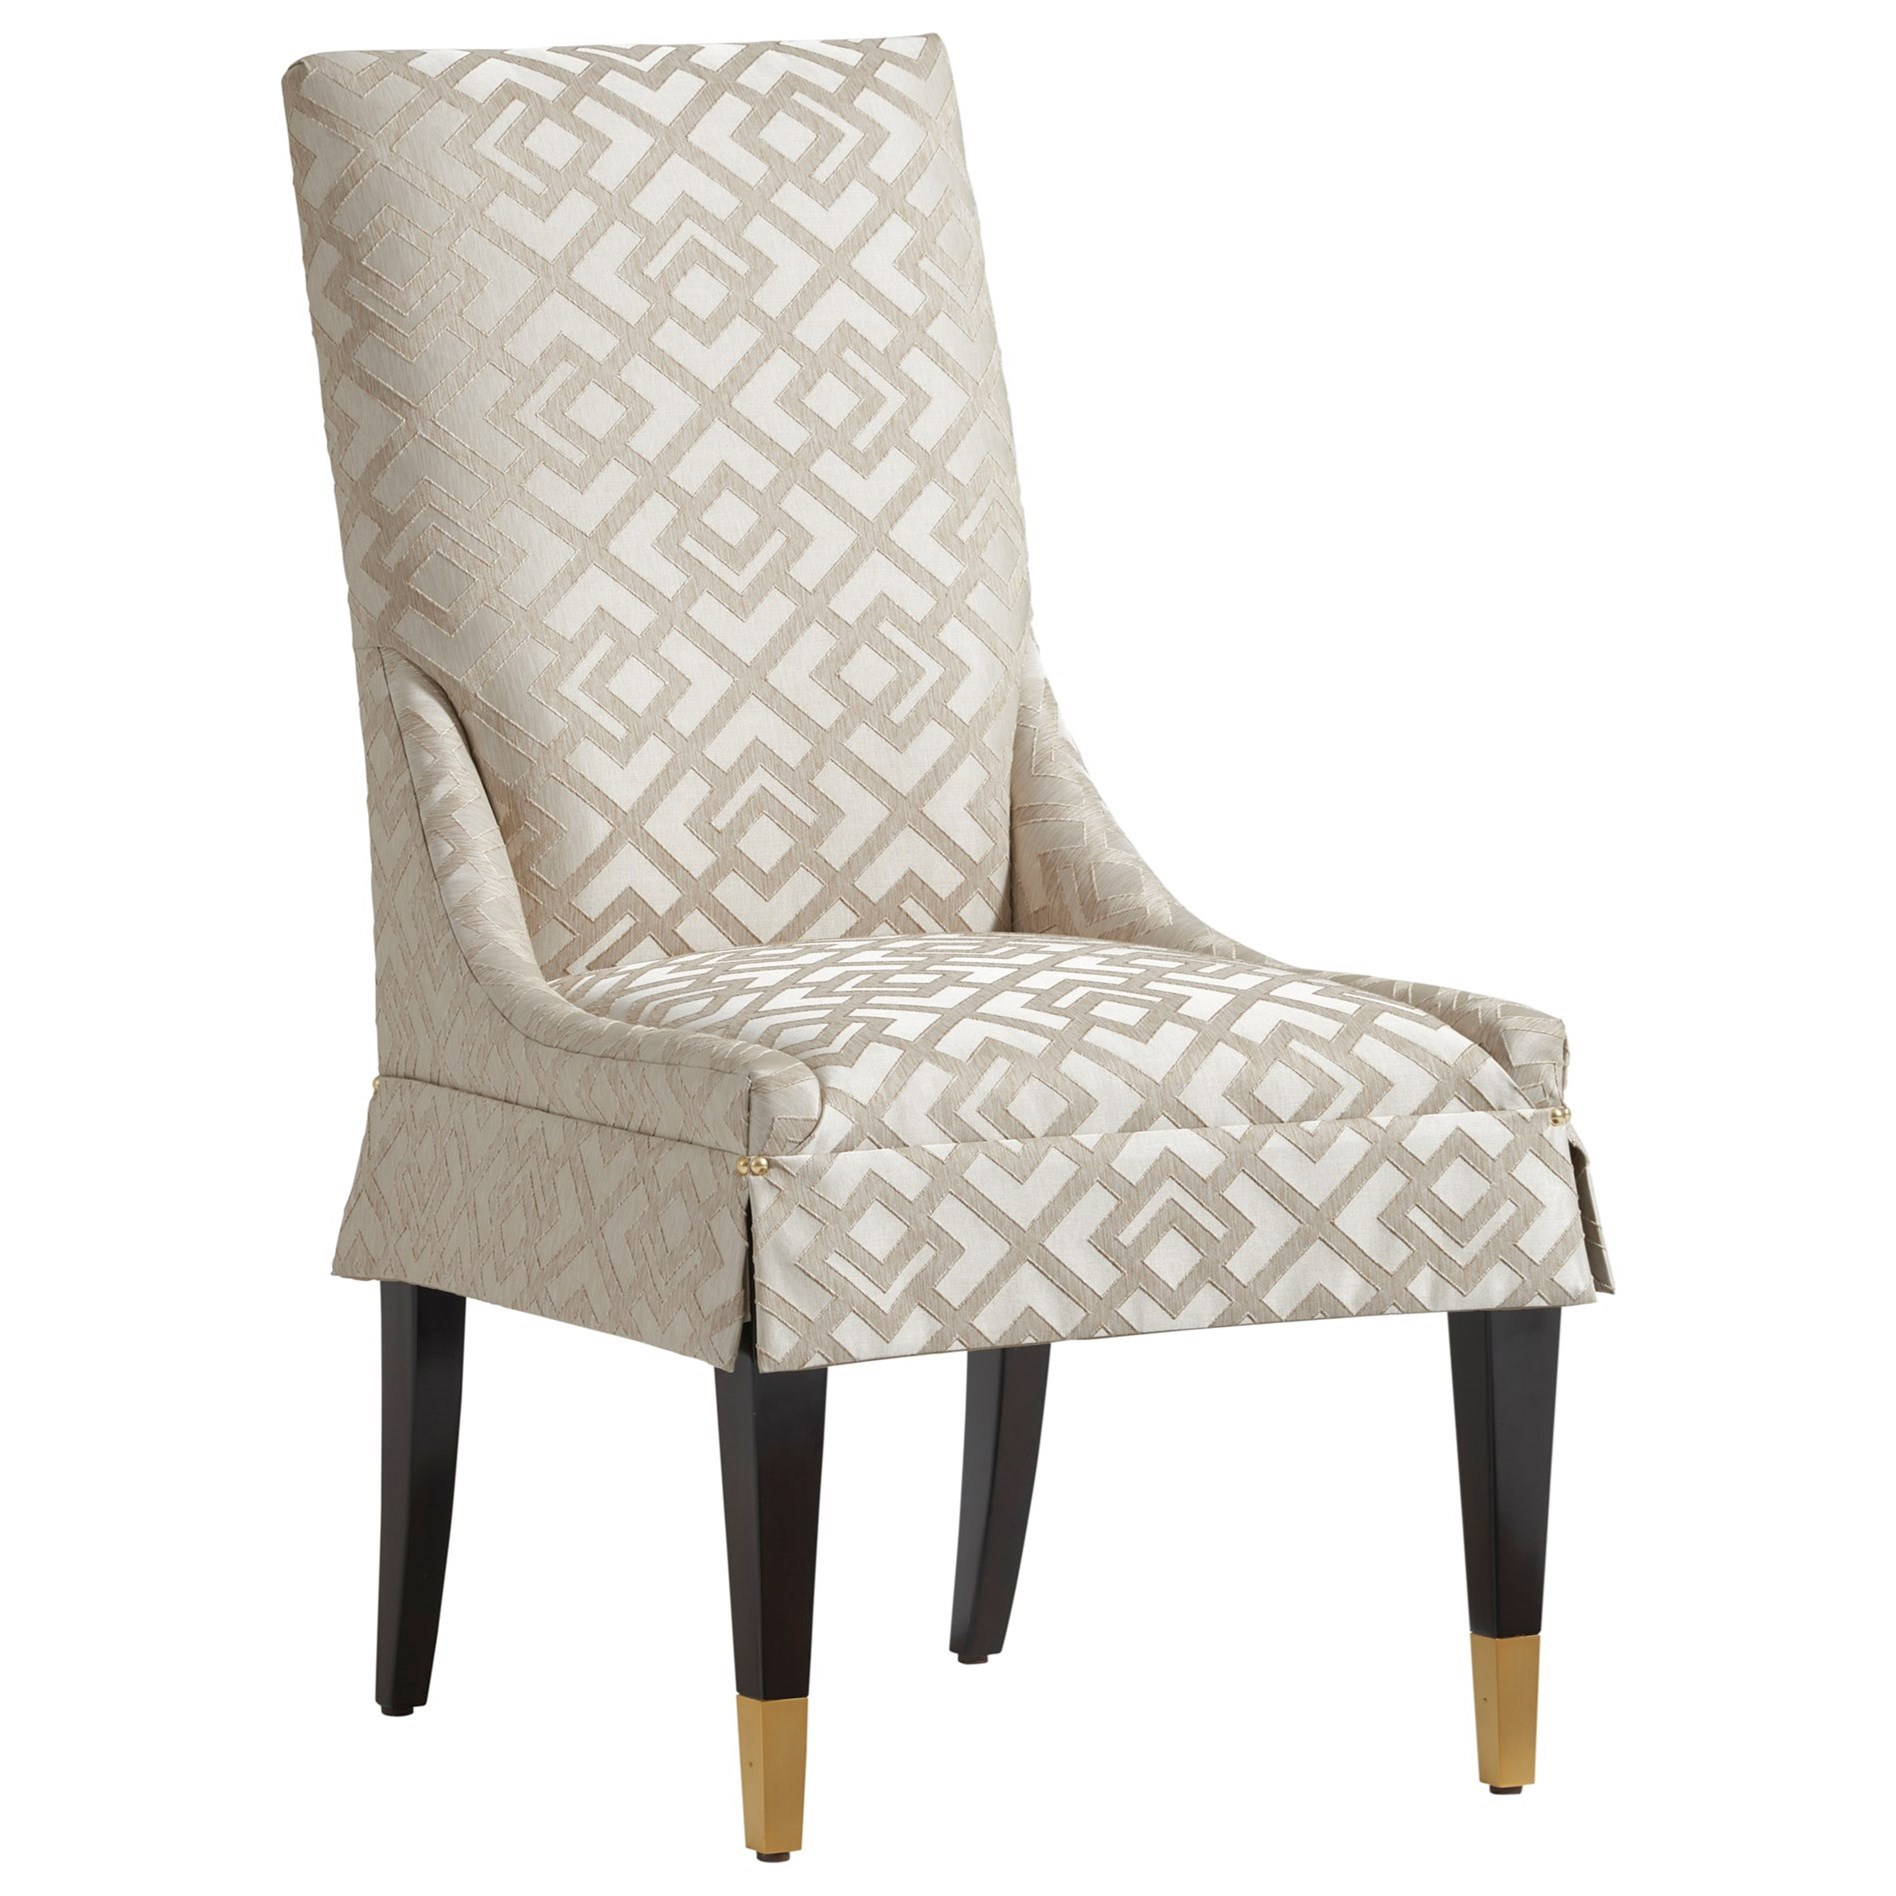 Carlyle Monarch Upholstered Side Chair - Custom by Lexington at Johnny Janosik